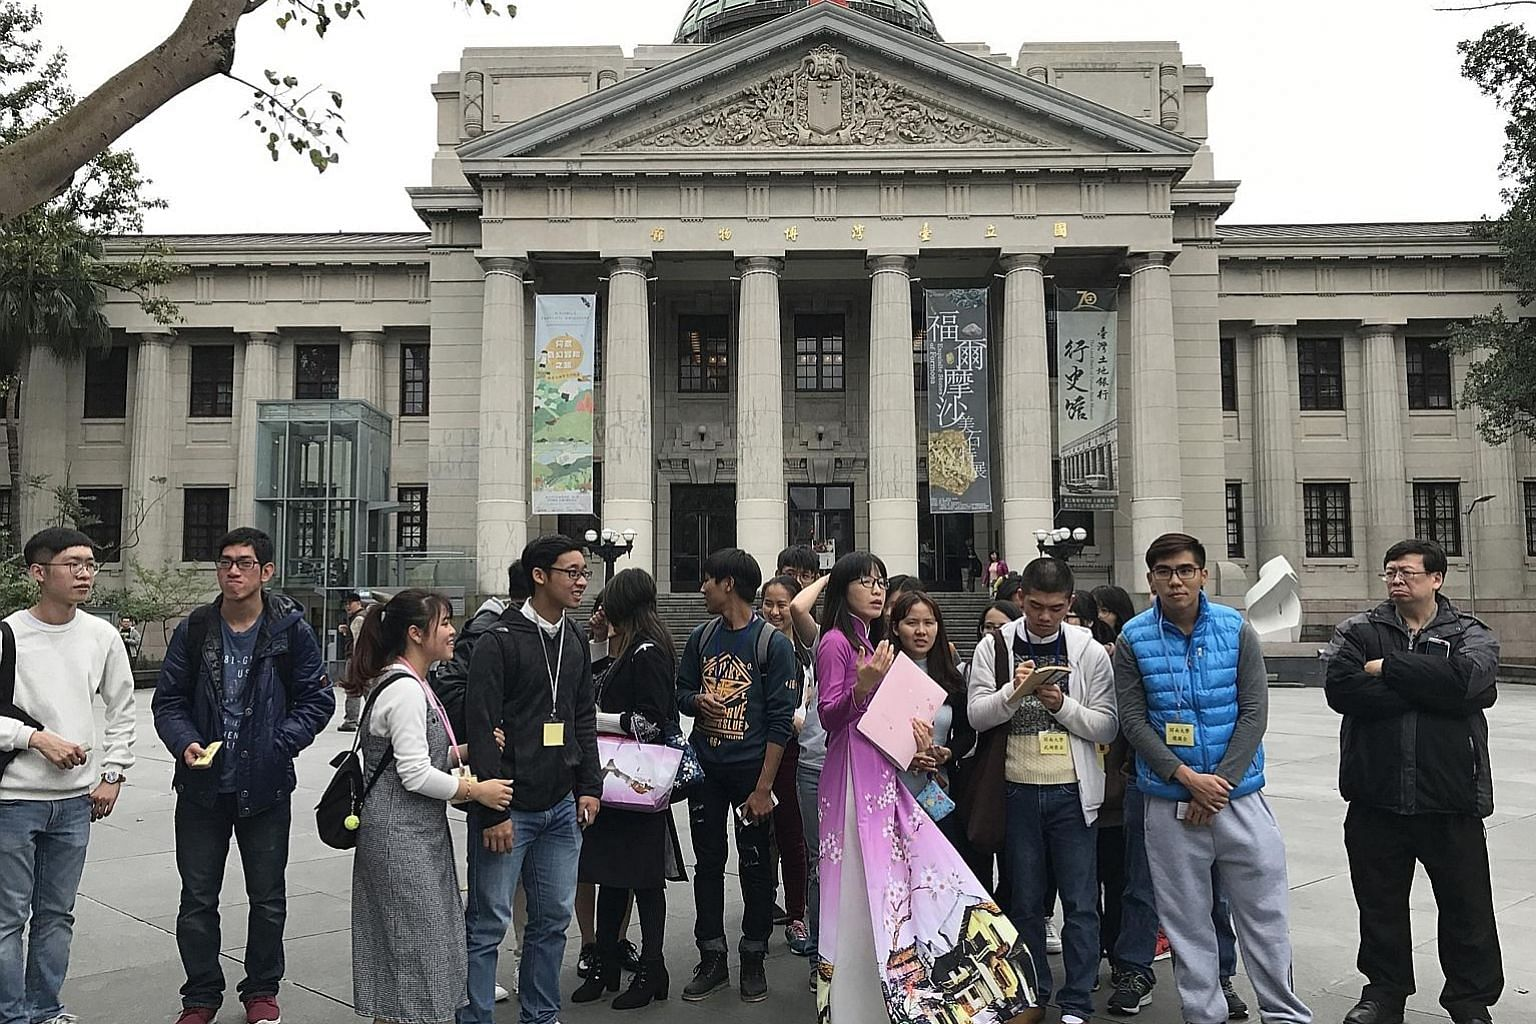 Ms Jessie Nguyen Thi Ngoc Mai (in pink) conducting a tour for a group from Vietnam at the National Taiwan Museum. The immigration agency is working with tour agencies to certify new immigrants and foreign spouses as tour guides to lead tour groups fr